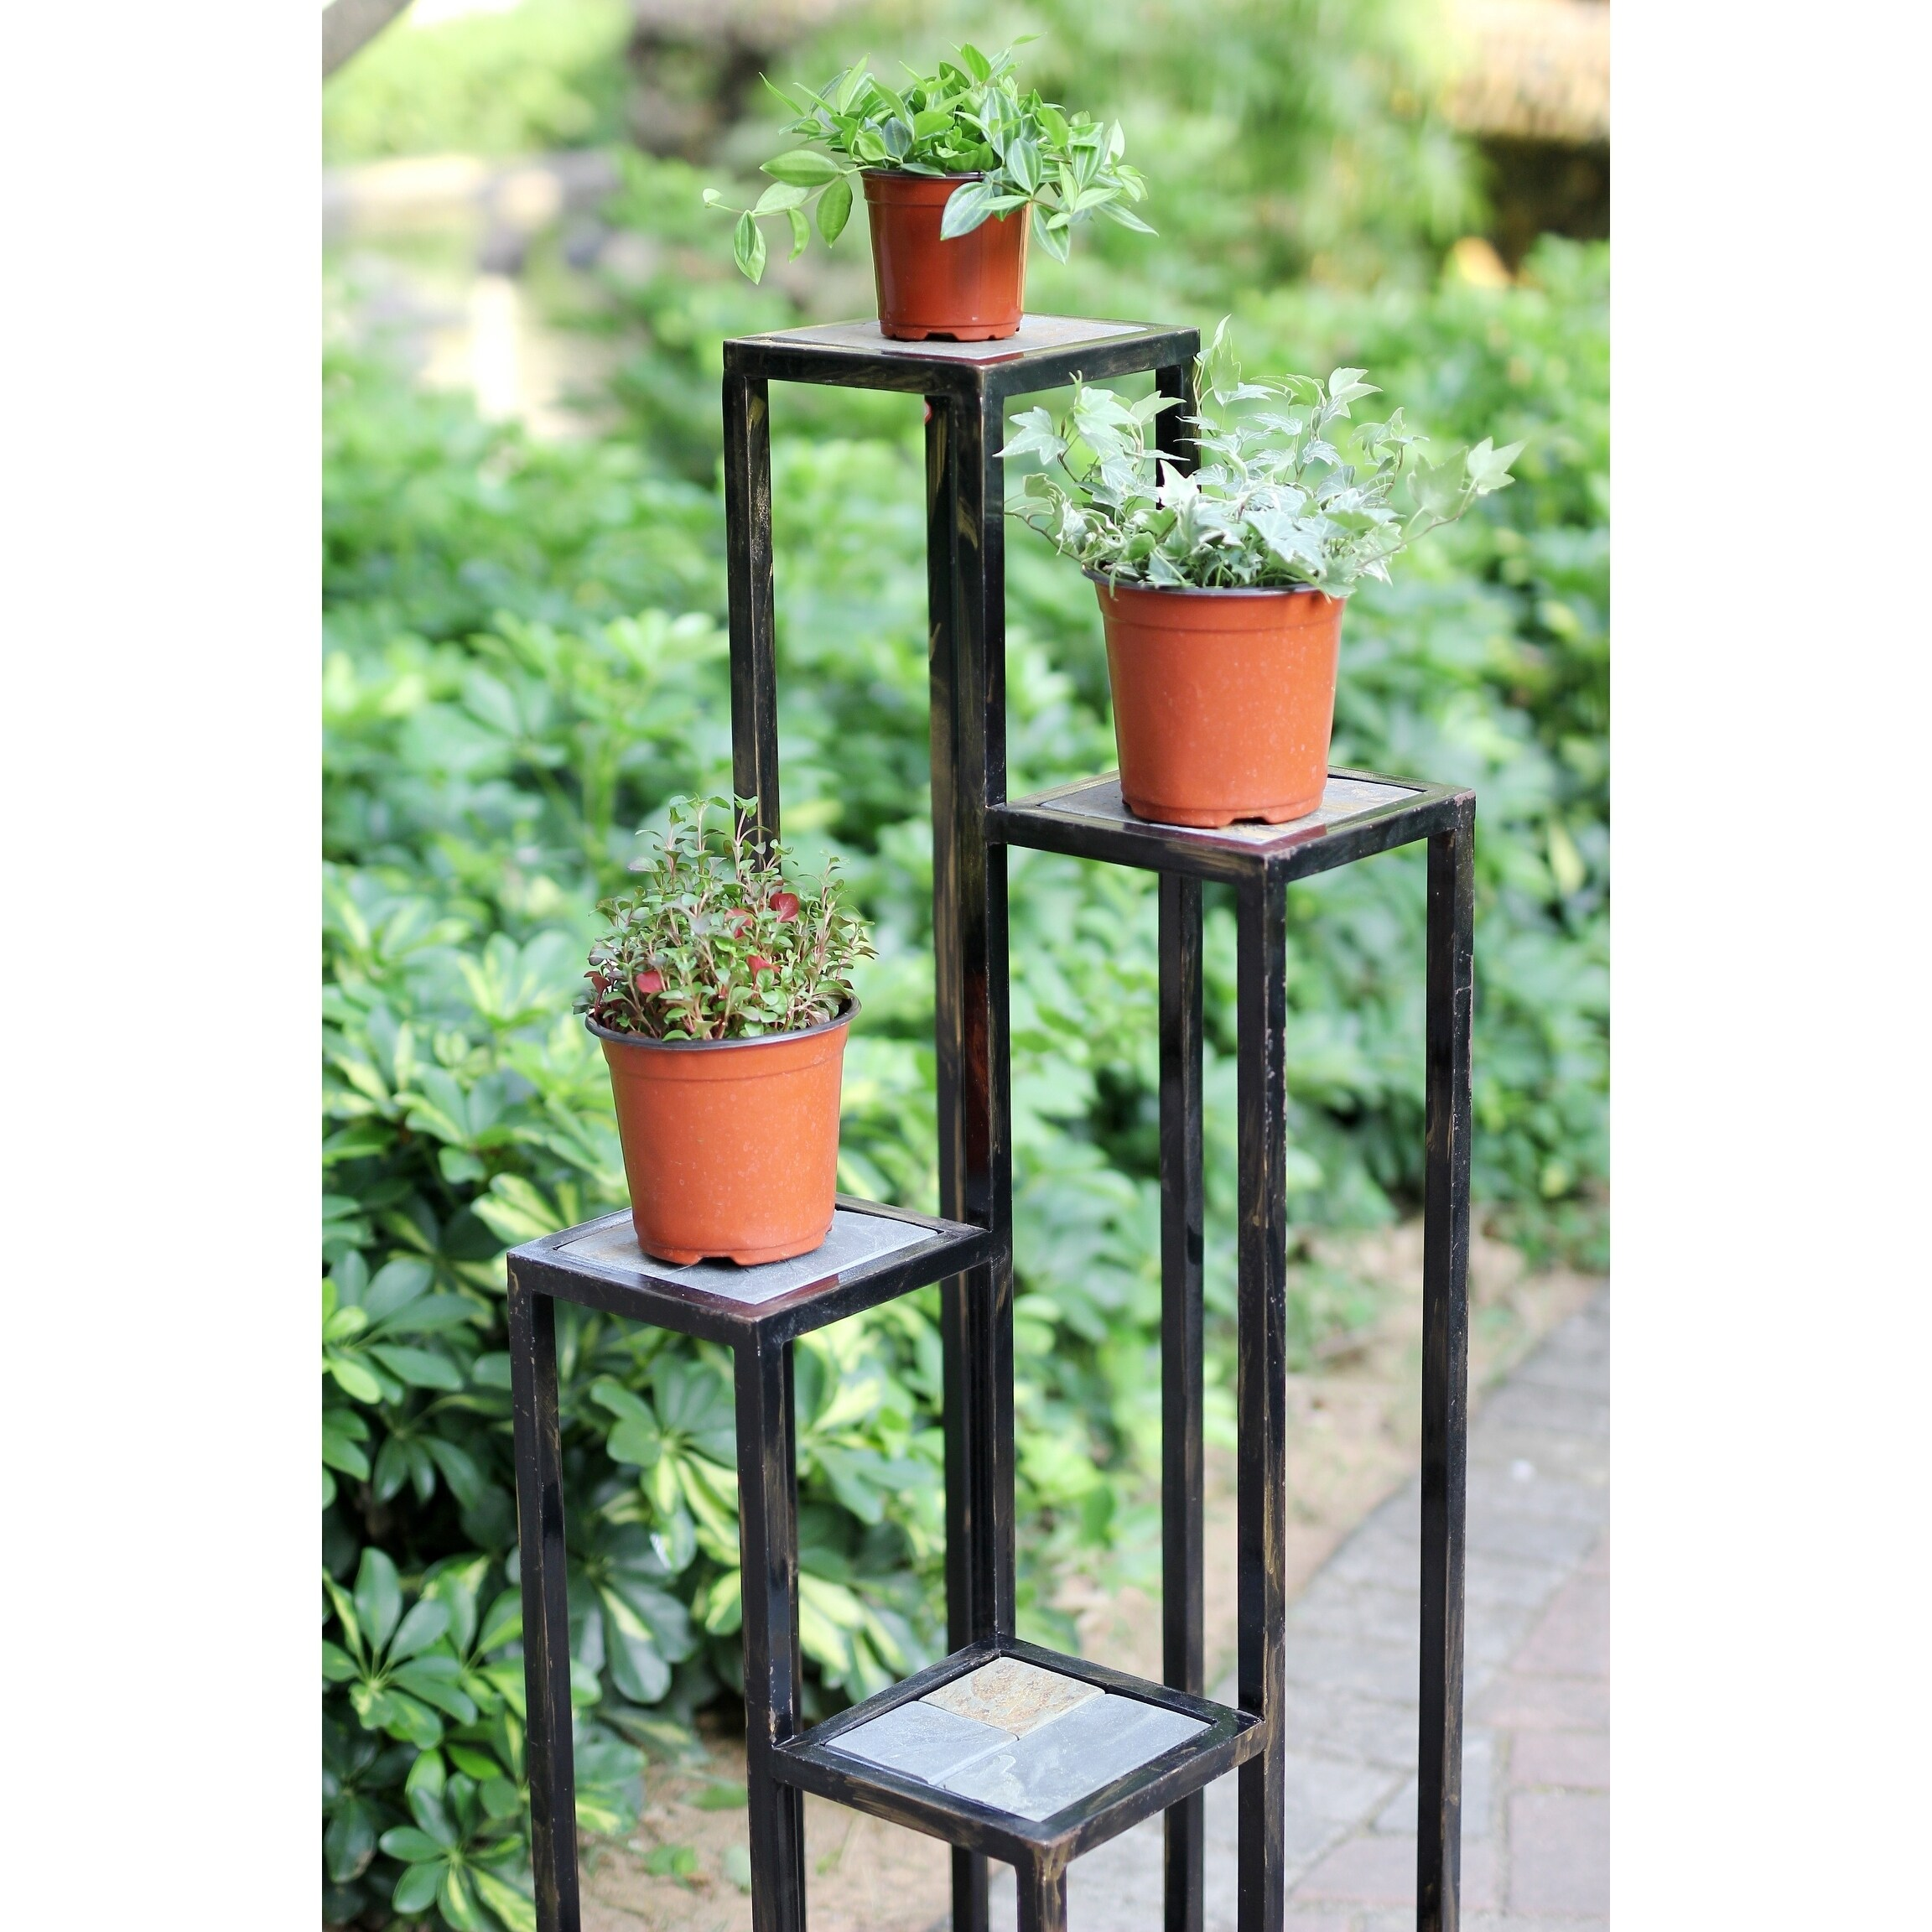 Buy Plant Stand Buy Planters And Plant Stands Online At Overstock Our